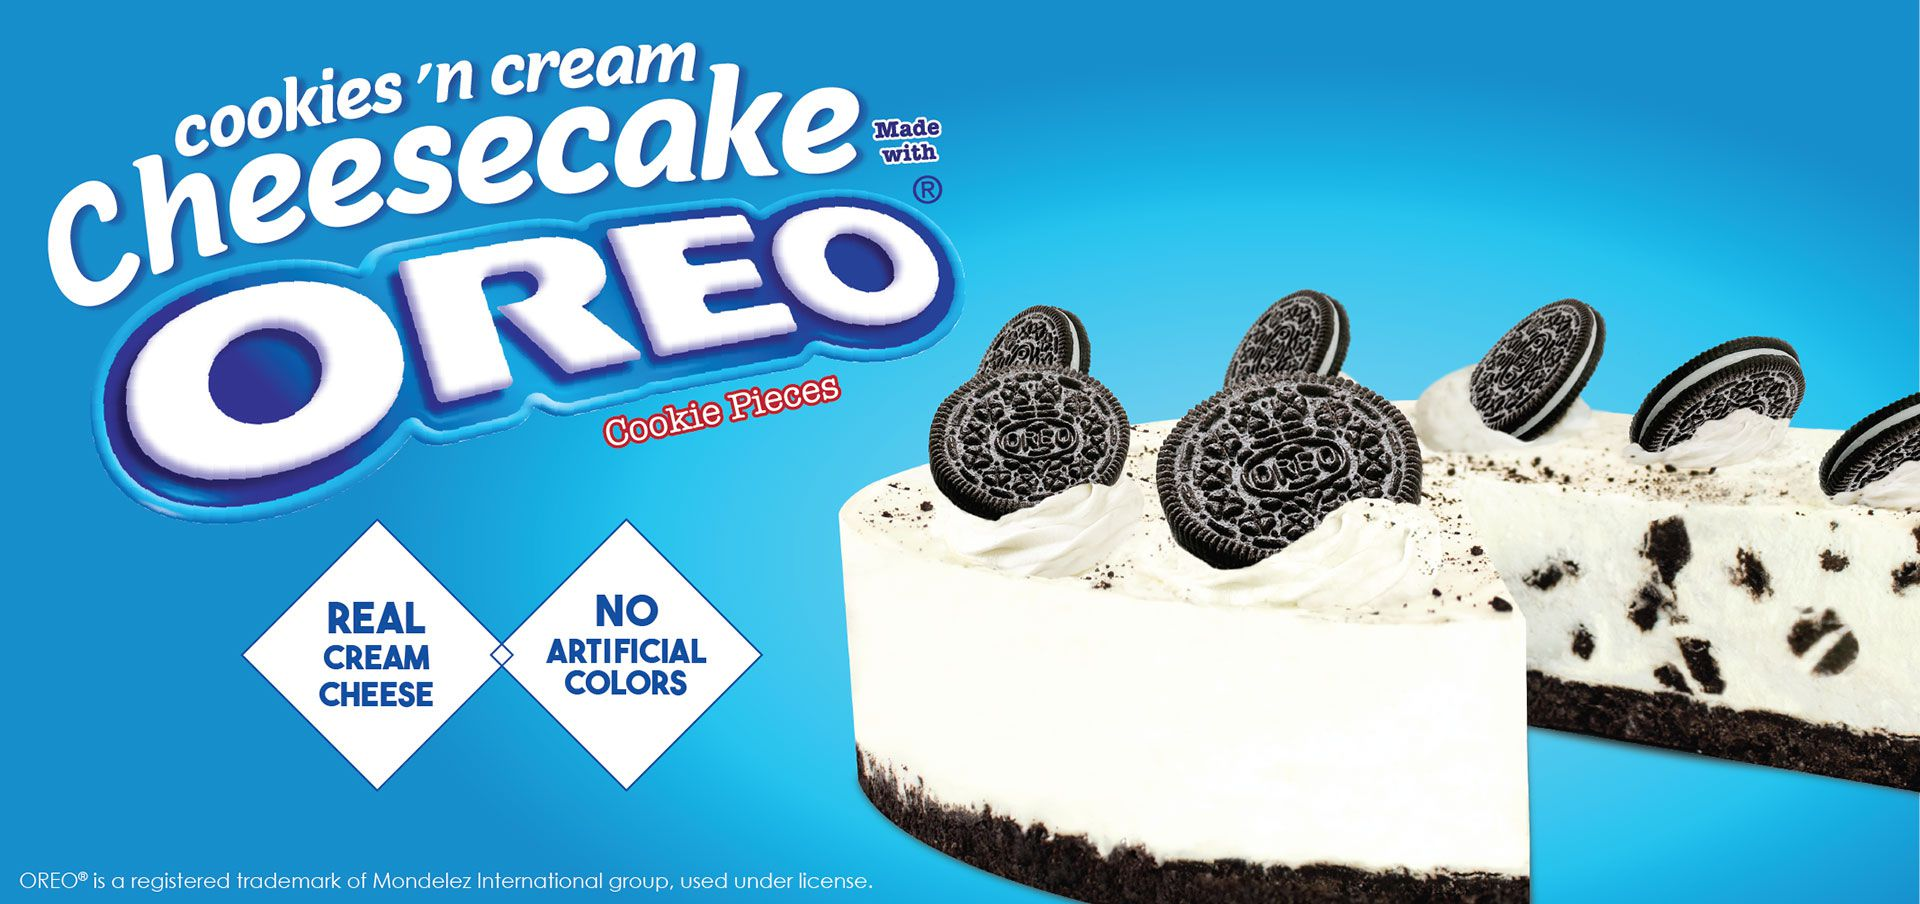 cookies 'n cream cheesecake made with oreo® cookie pieces label image